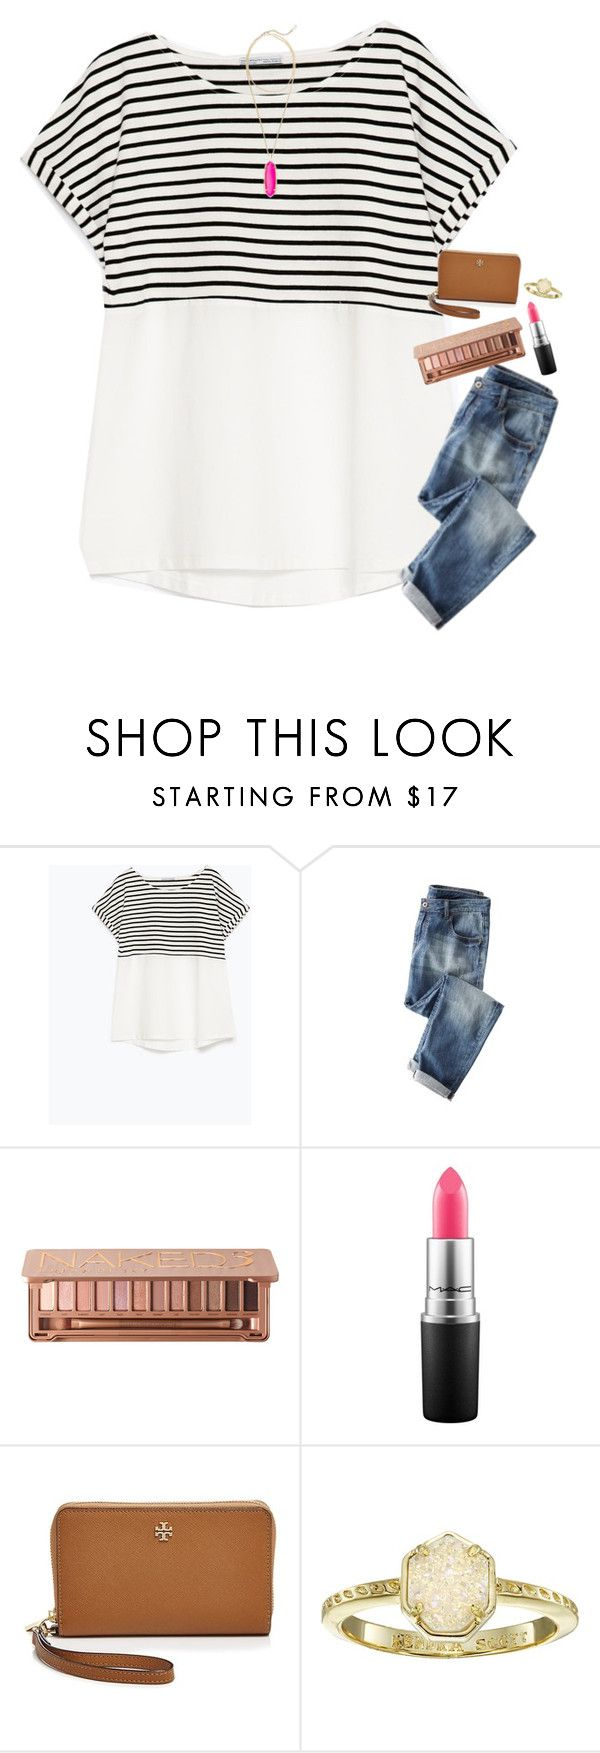 """""""We're makin a Target run"""" by toonceyb ❤ liked on Polyvore featuring Zara, Urban Decay, MAC Cosmetics, Tory Burch and Kendra Scott"""